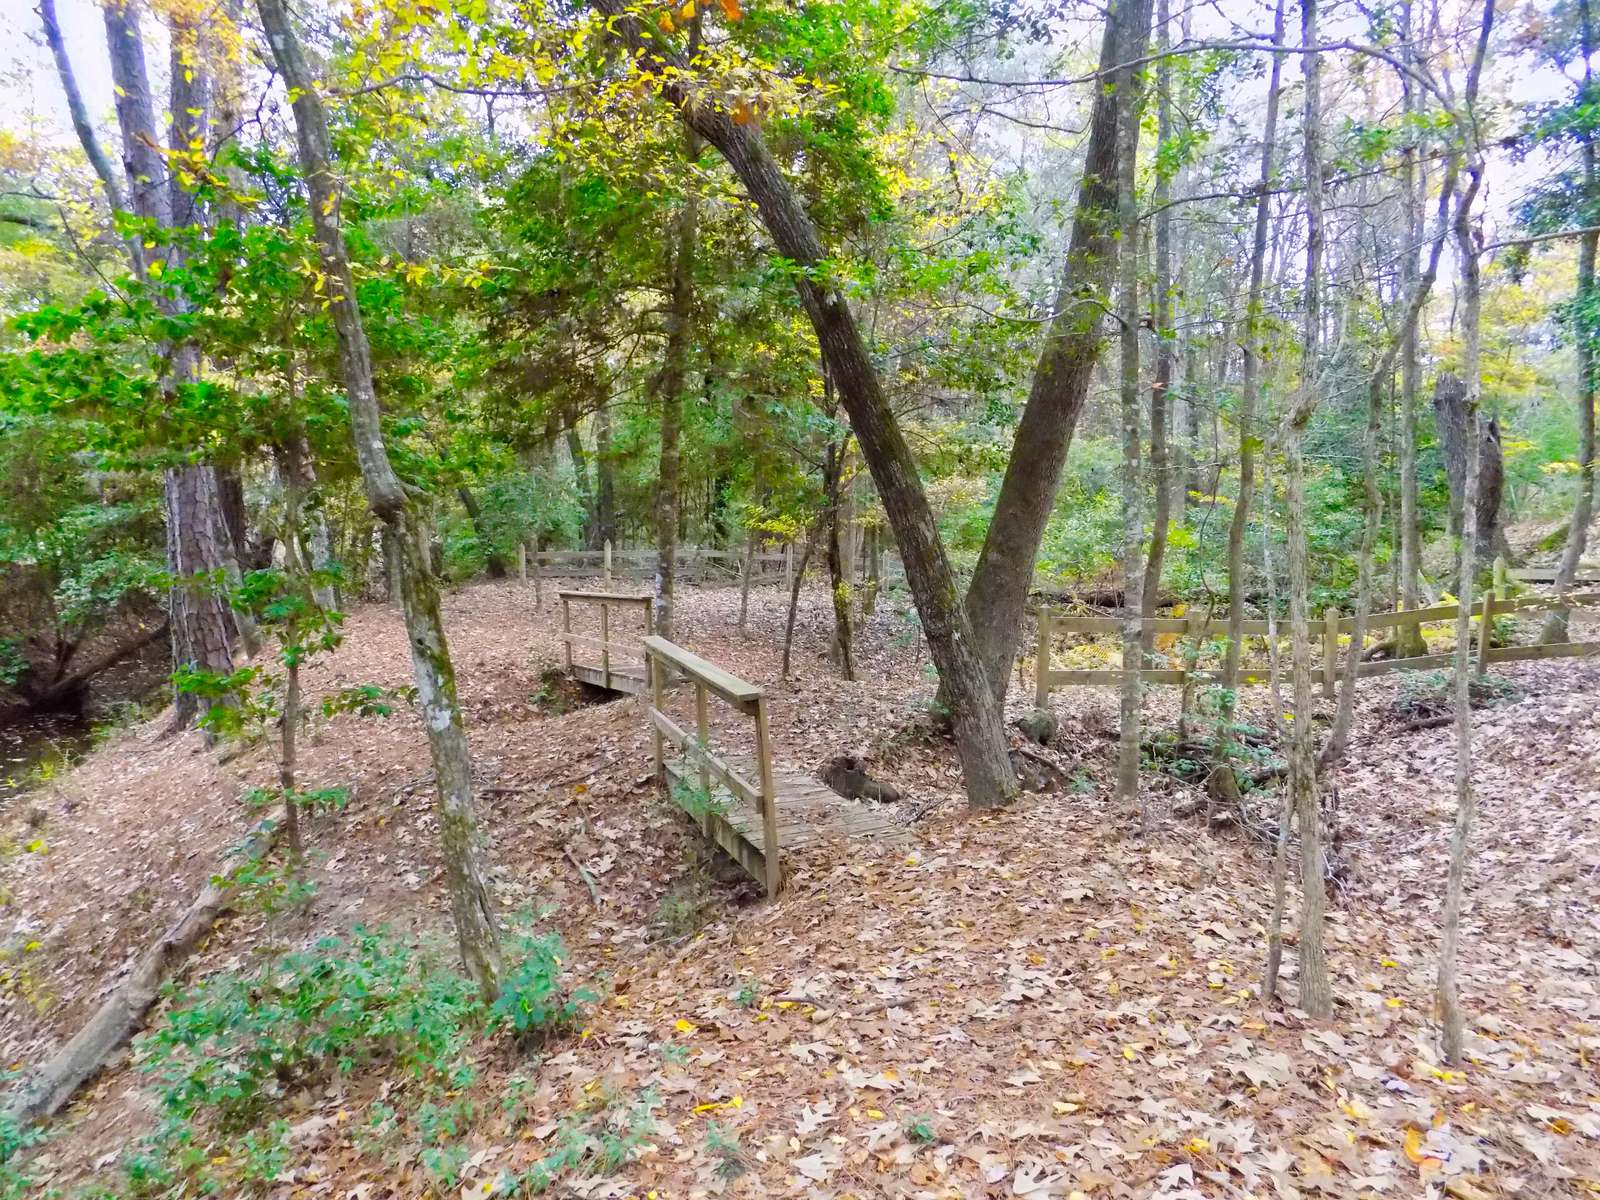 There are small bridges and benches scattered around the property.